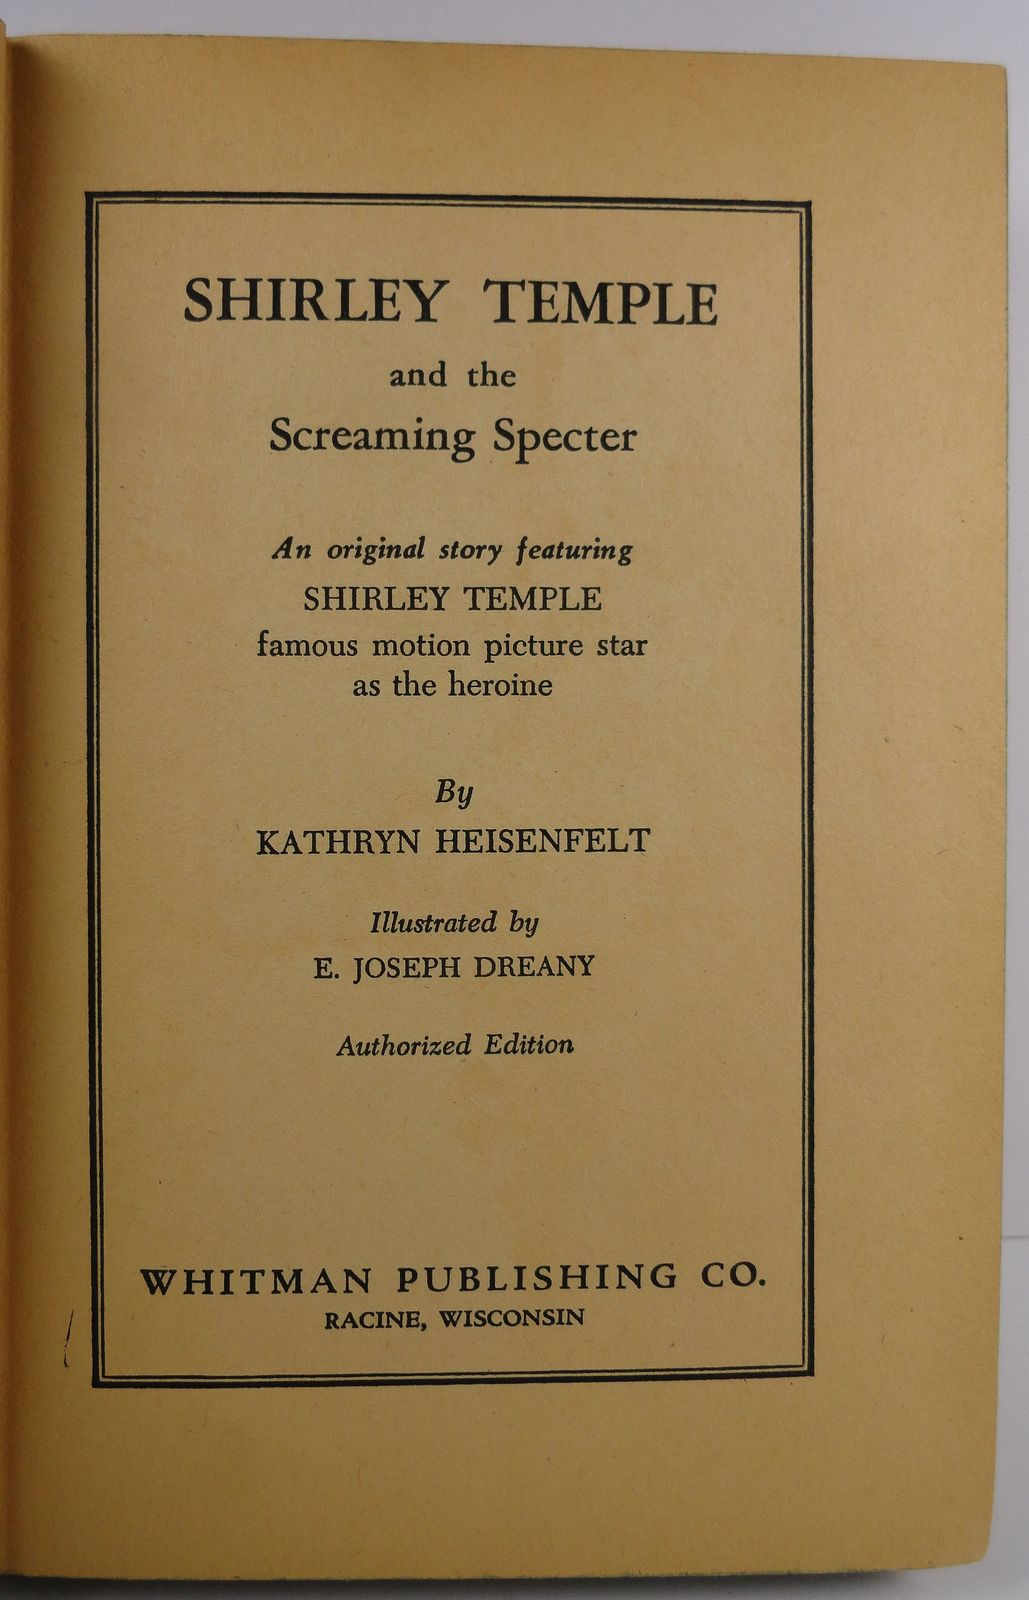 Shirley Temple and the Screaming Specter Kathryn Heisenfelt